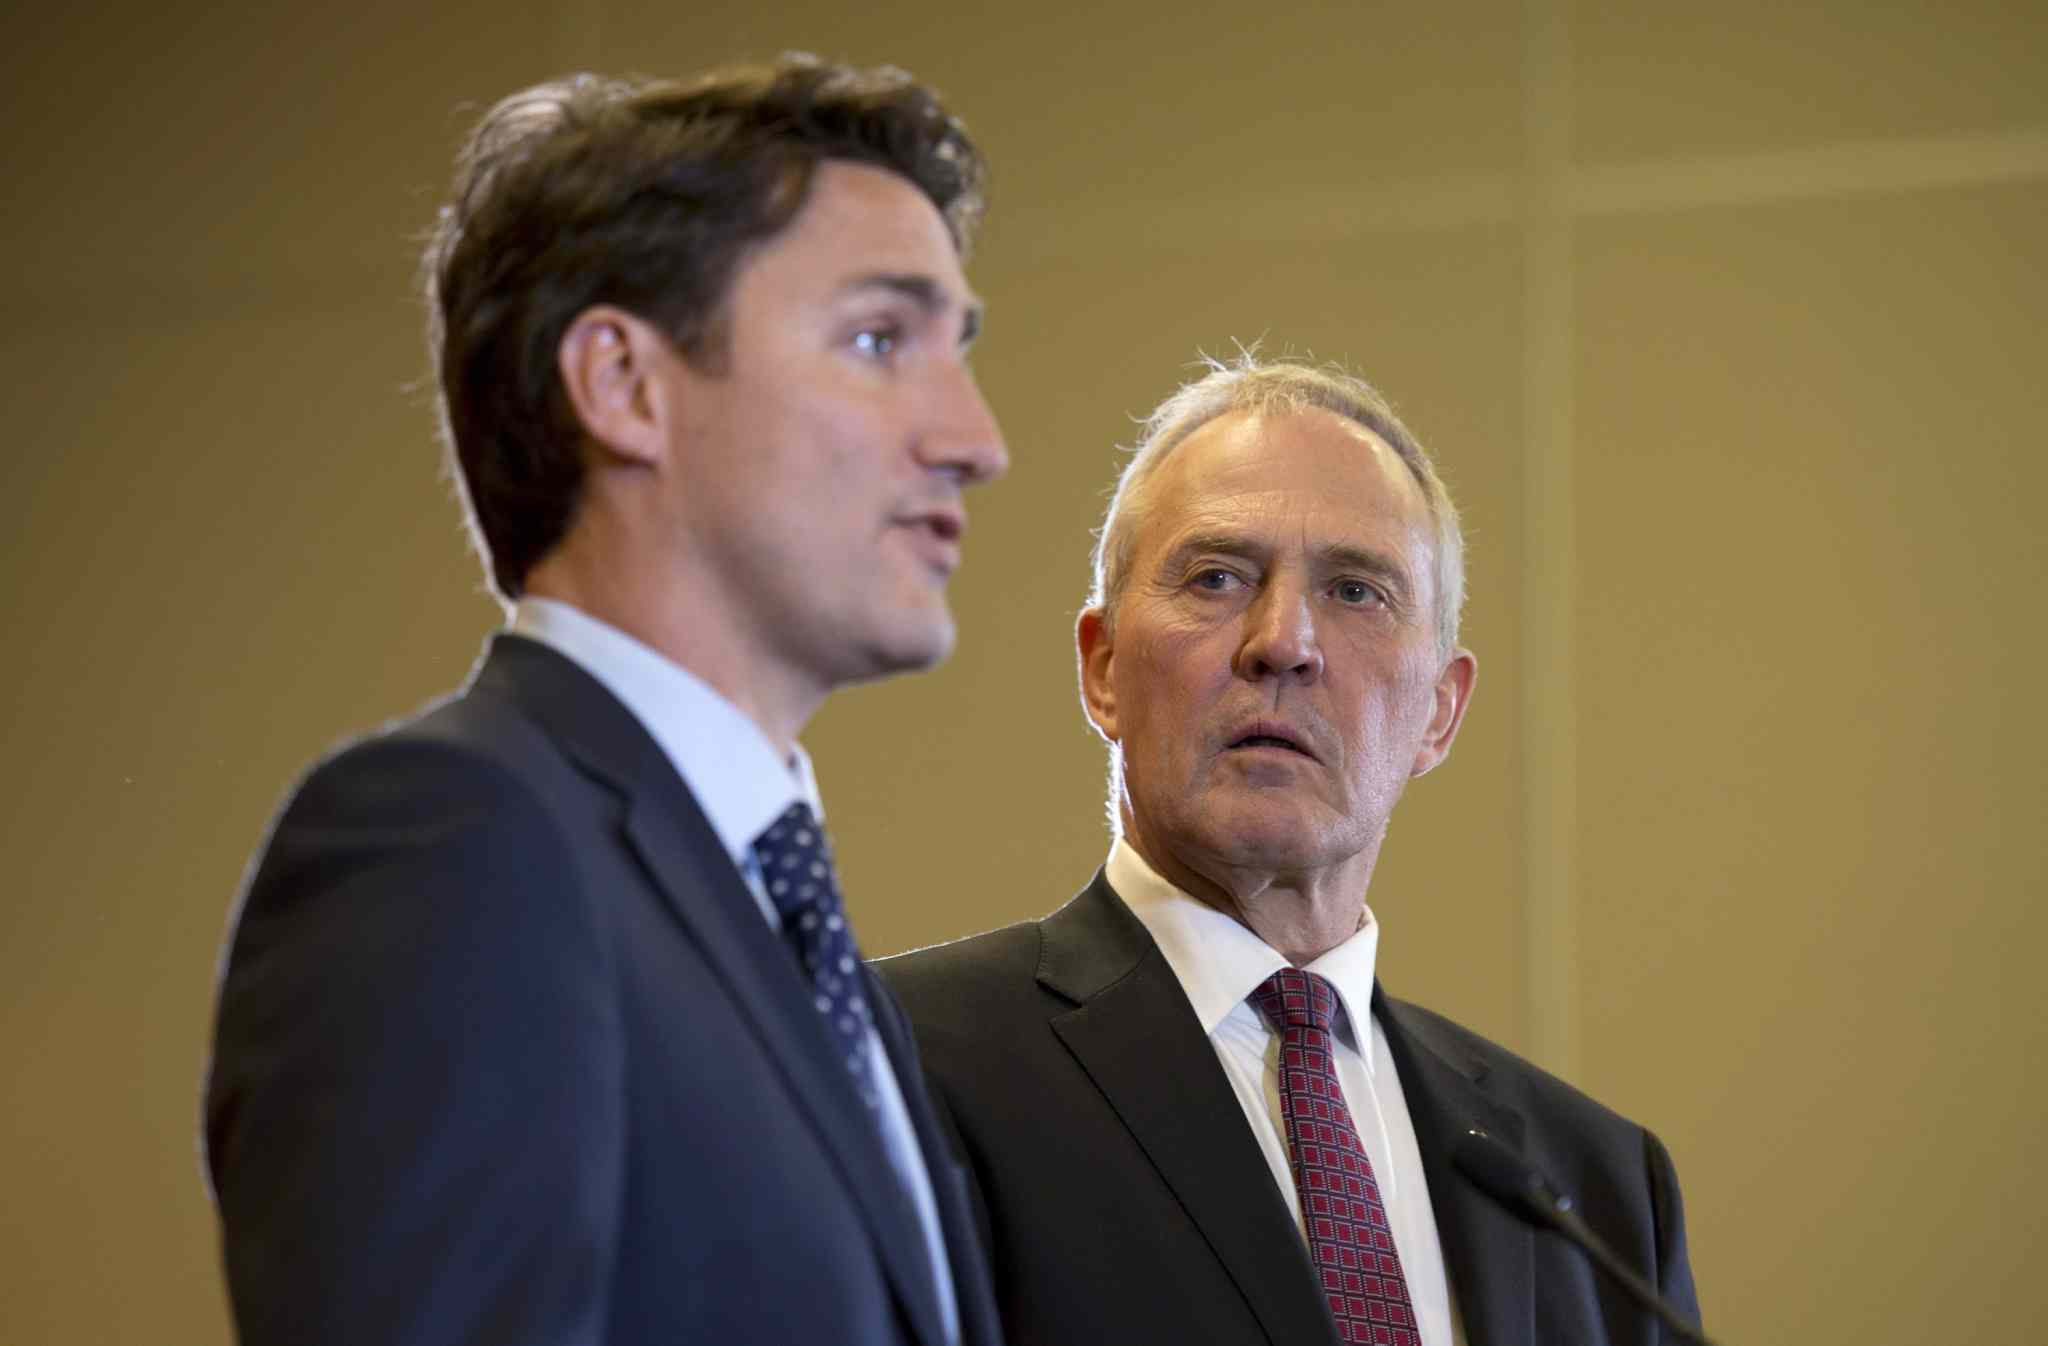 Bill Blair (right, seen with Prime Minster Justin Trudeau) thinks it's important for the federal government to hear the perspectives of Indigenous communities on marijuana. (Adrian Wyld / The Canadian Press files)